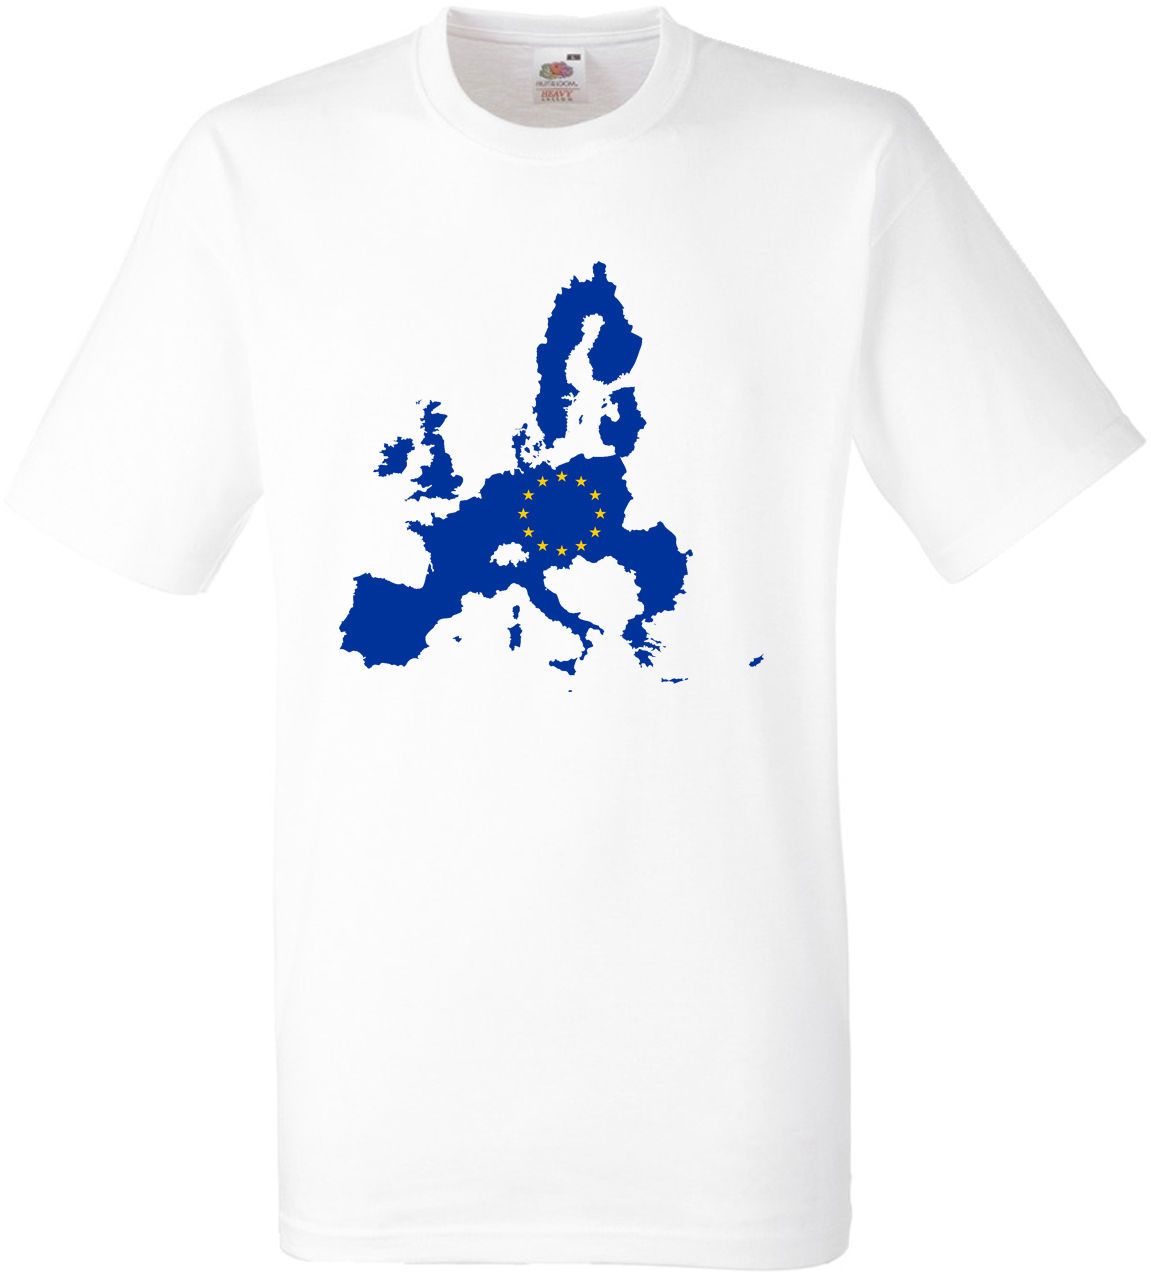 BREXIT T SHIRT FLAG MAP OF EUROPE